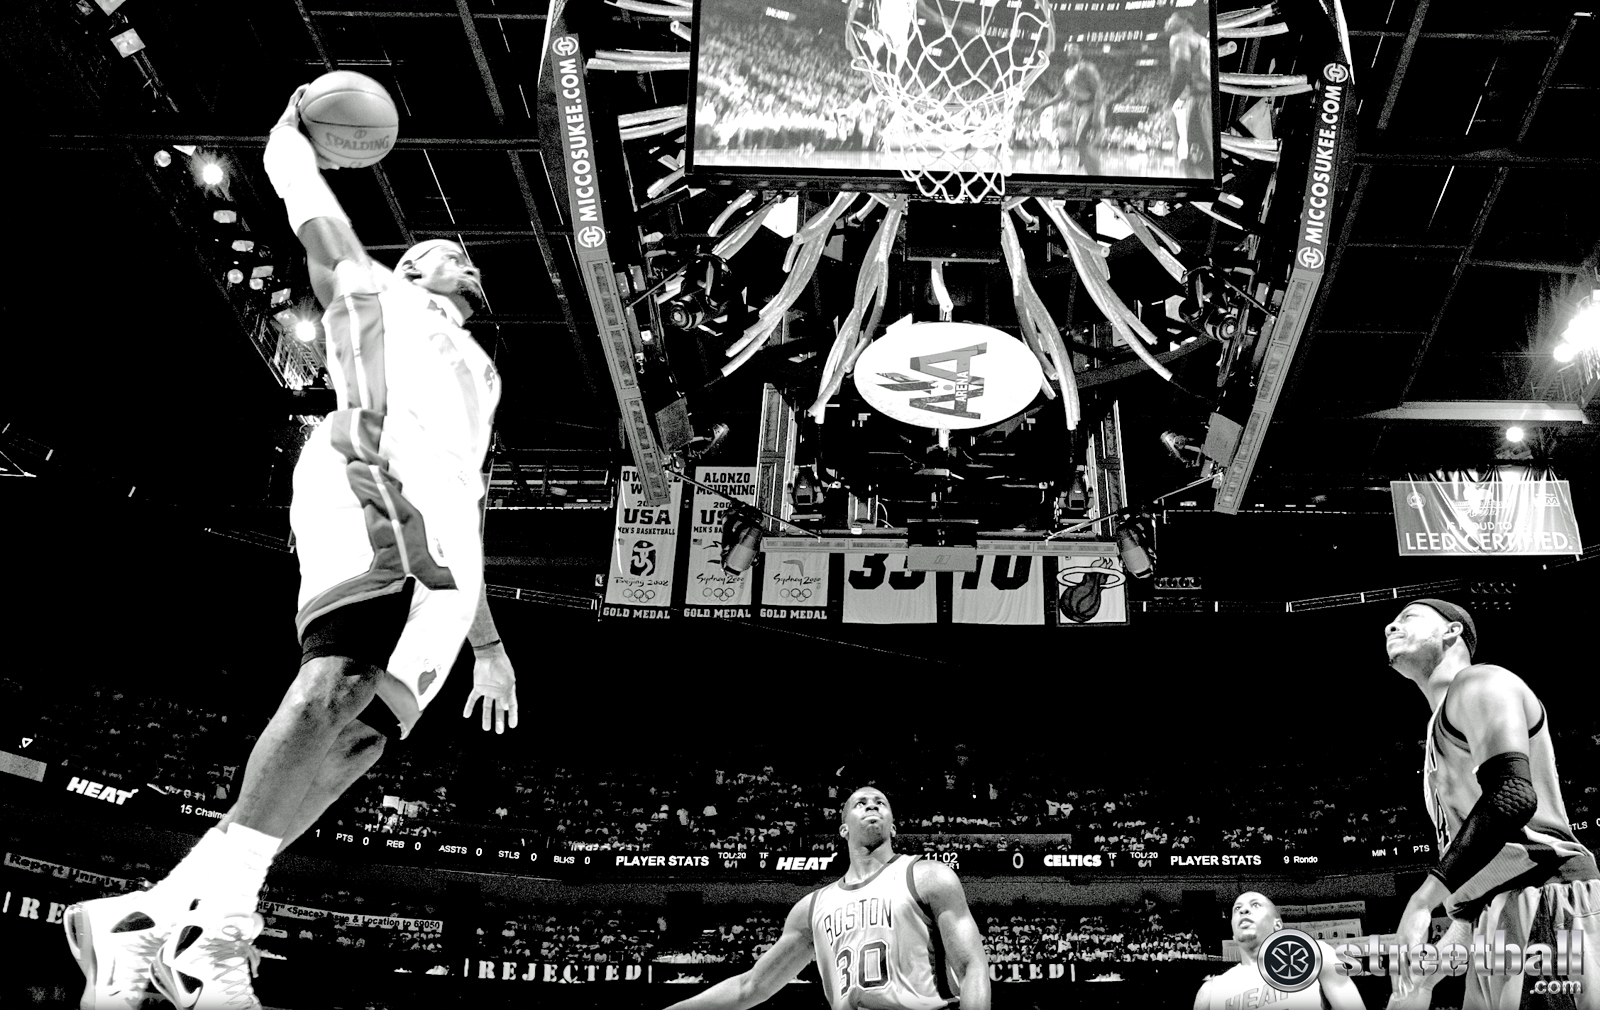 http://1.bp.blogspot.com/-yEHbLbLRI_o/T9RqRpXLDGI/AAAAAAAAAaM/_v51oL5xkI4/s1600/LeBron_James_Slam_Dunk_2012_Basketball_Wallpaper_HD.png